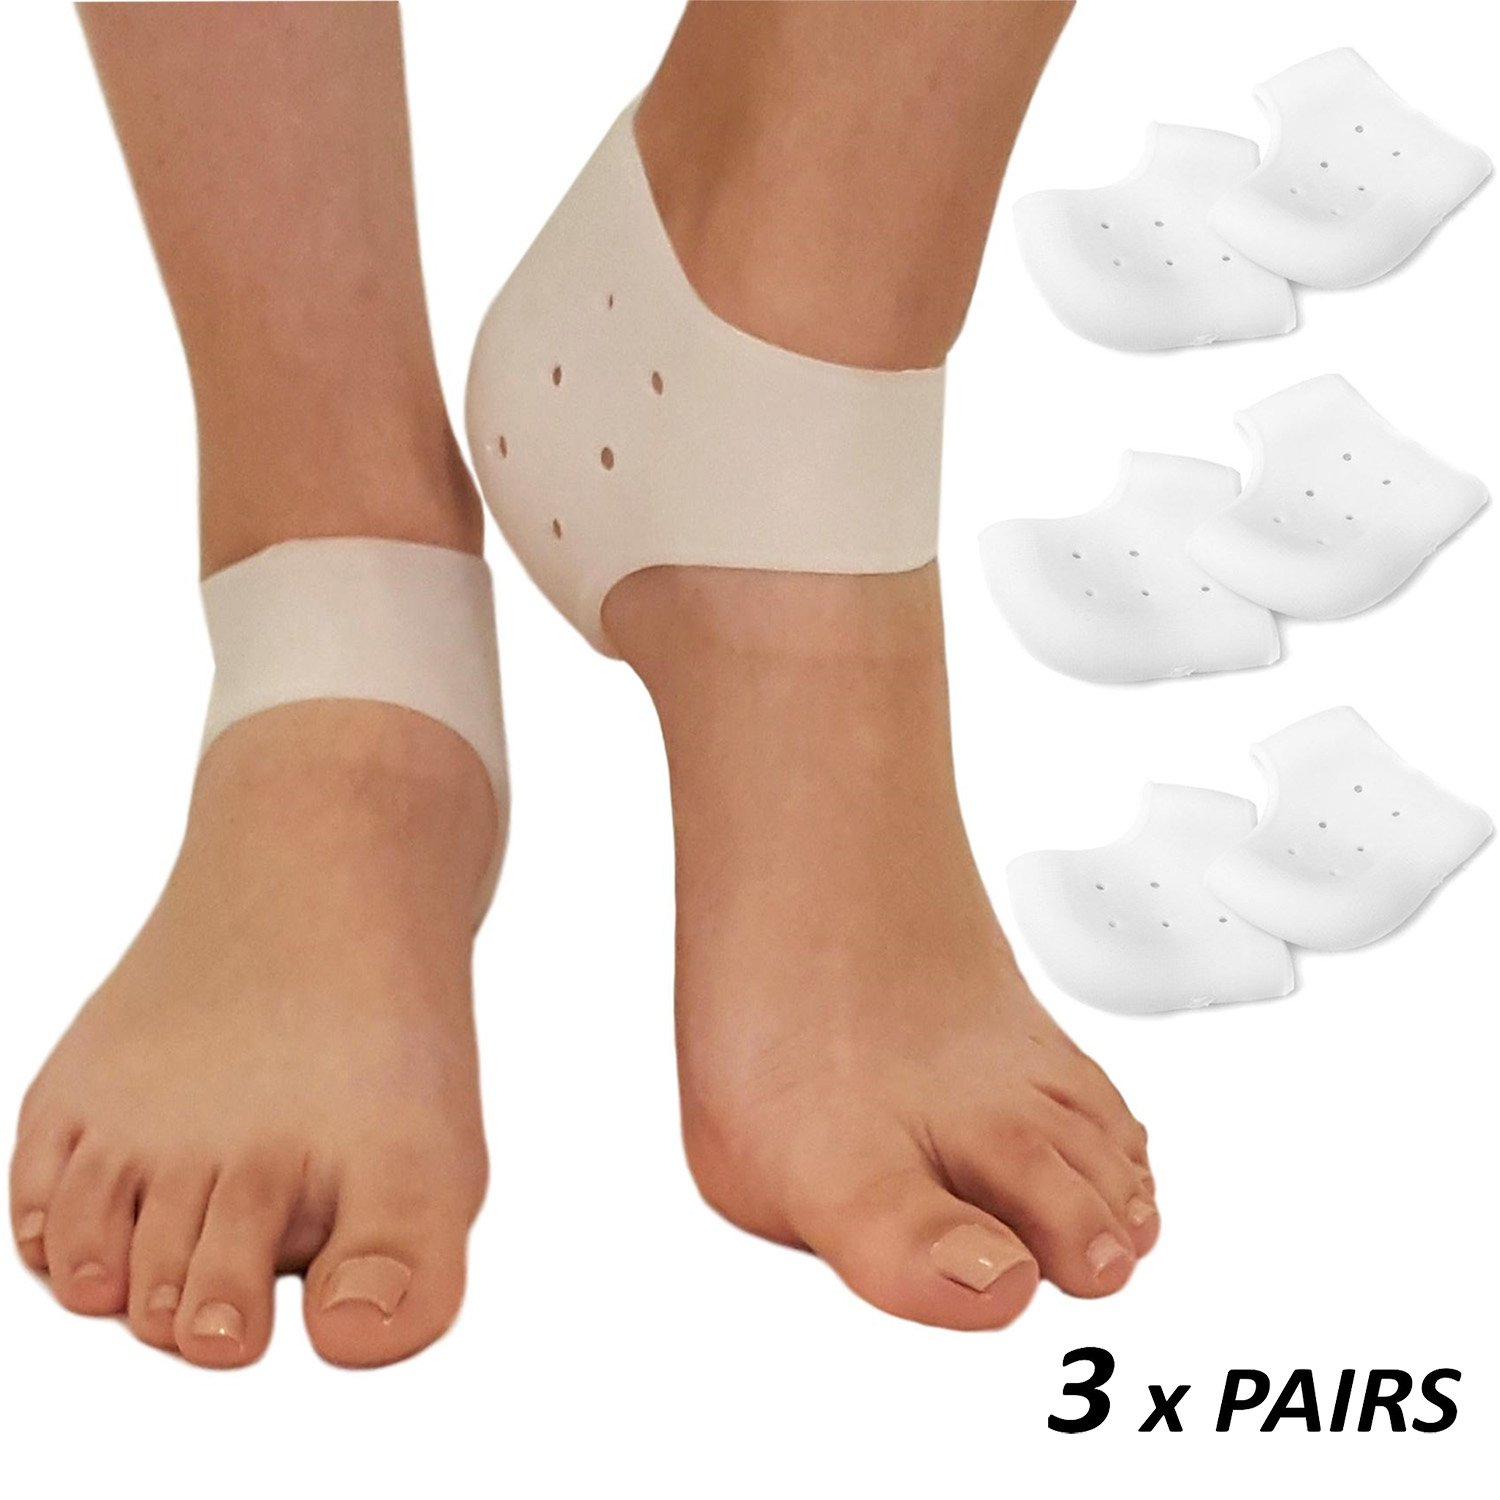 Plantar Fasciitis Inserts Heel Protectors - Silicone Gel Heel Cups Shoes Inserts, Orthotics Heel Cushion for Bone Spur & Heel Spur Pain Relief 3 Pairs of Foot Pain Plantar Fascitis Heel Sleeves - 3mm by ARMSTRONG AMERIKA